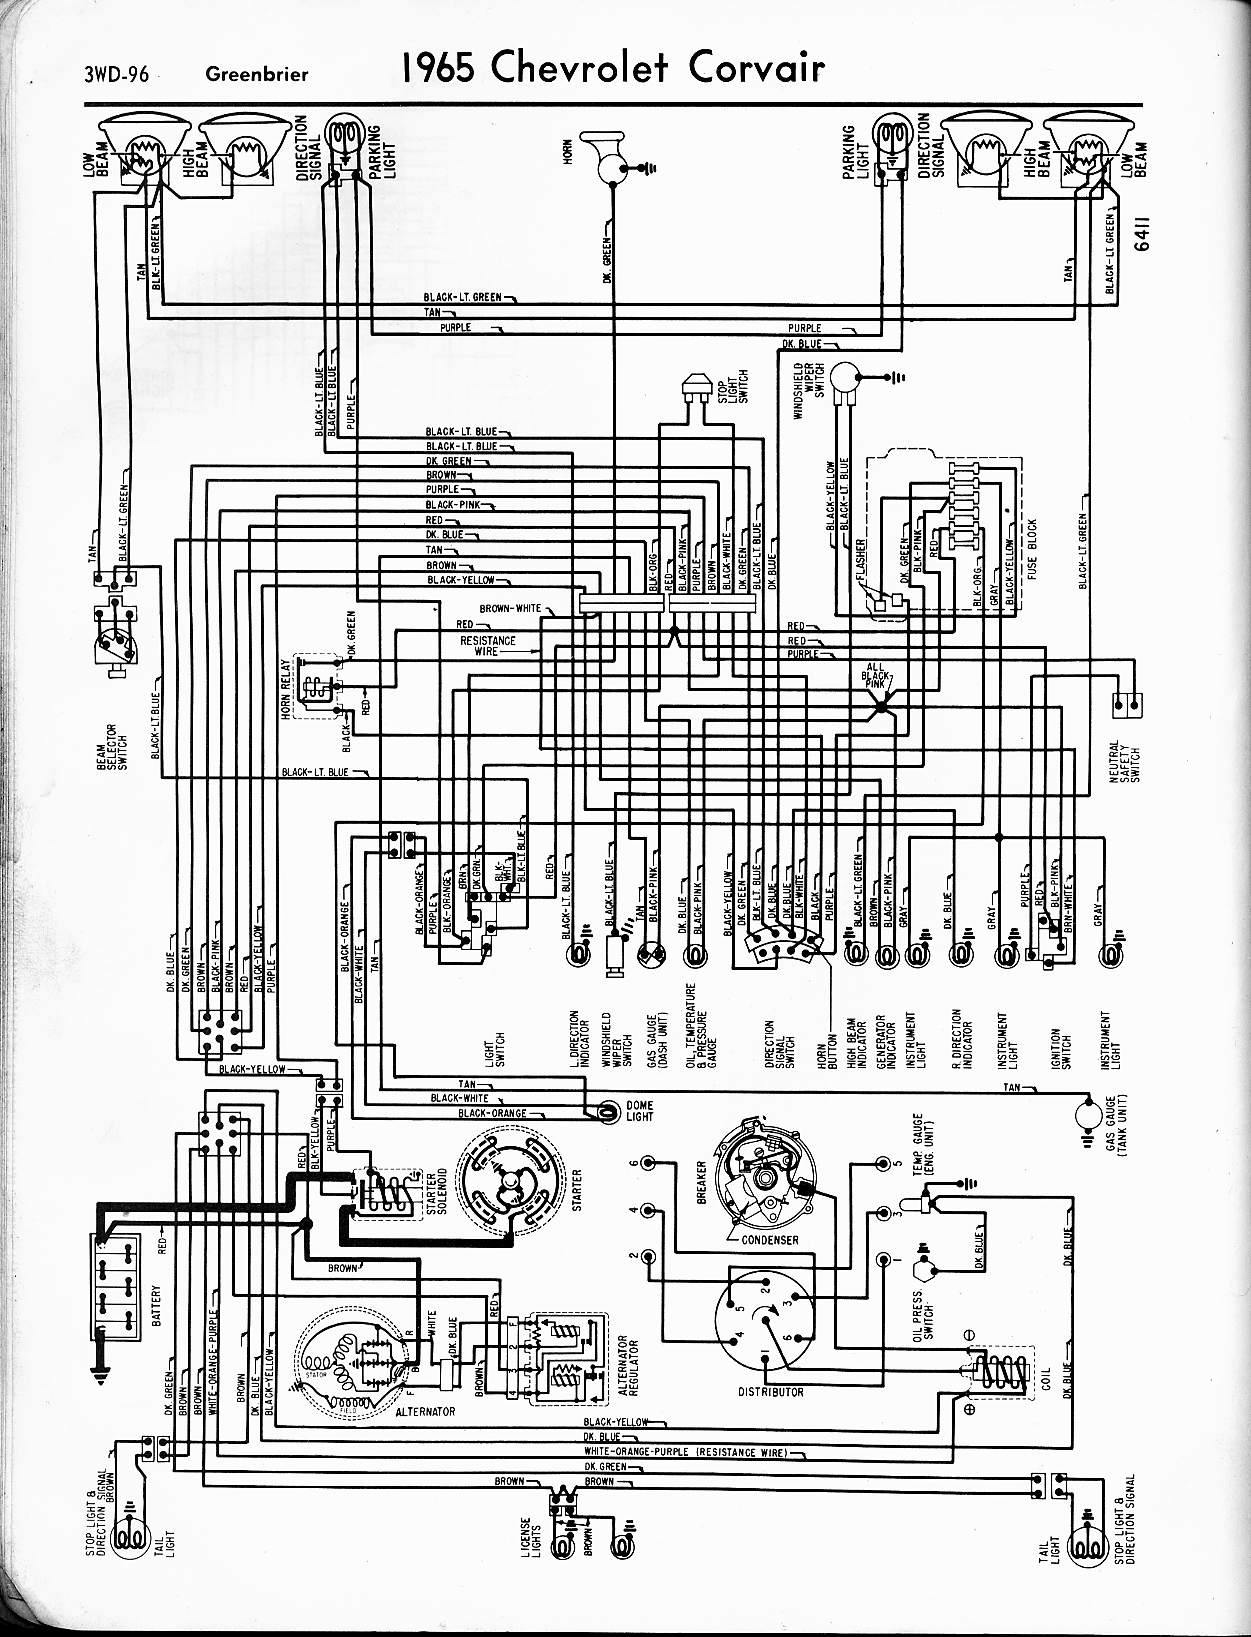 Wiring Diagram For 1965 Chevrolet C20 Circuit Schematic Harness 57 65 Chevy Diagrams 1964